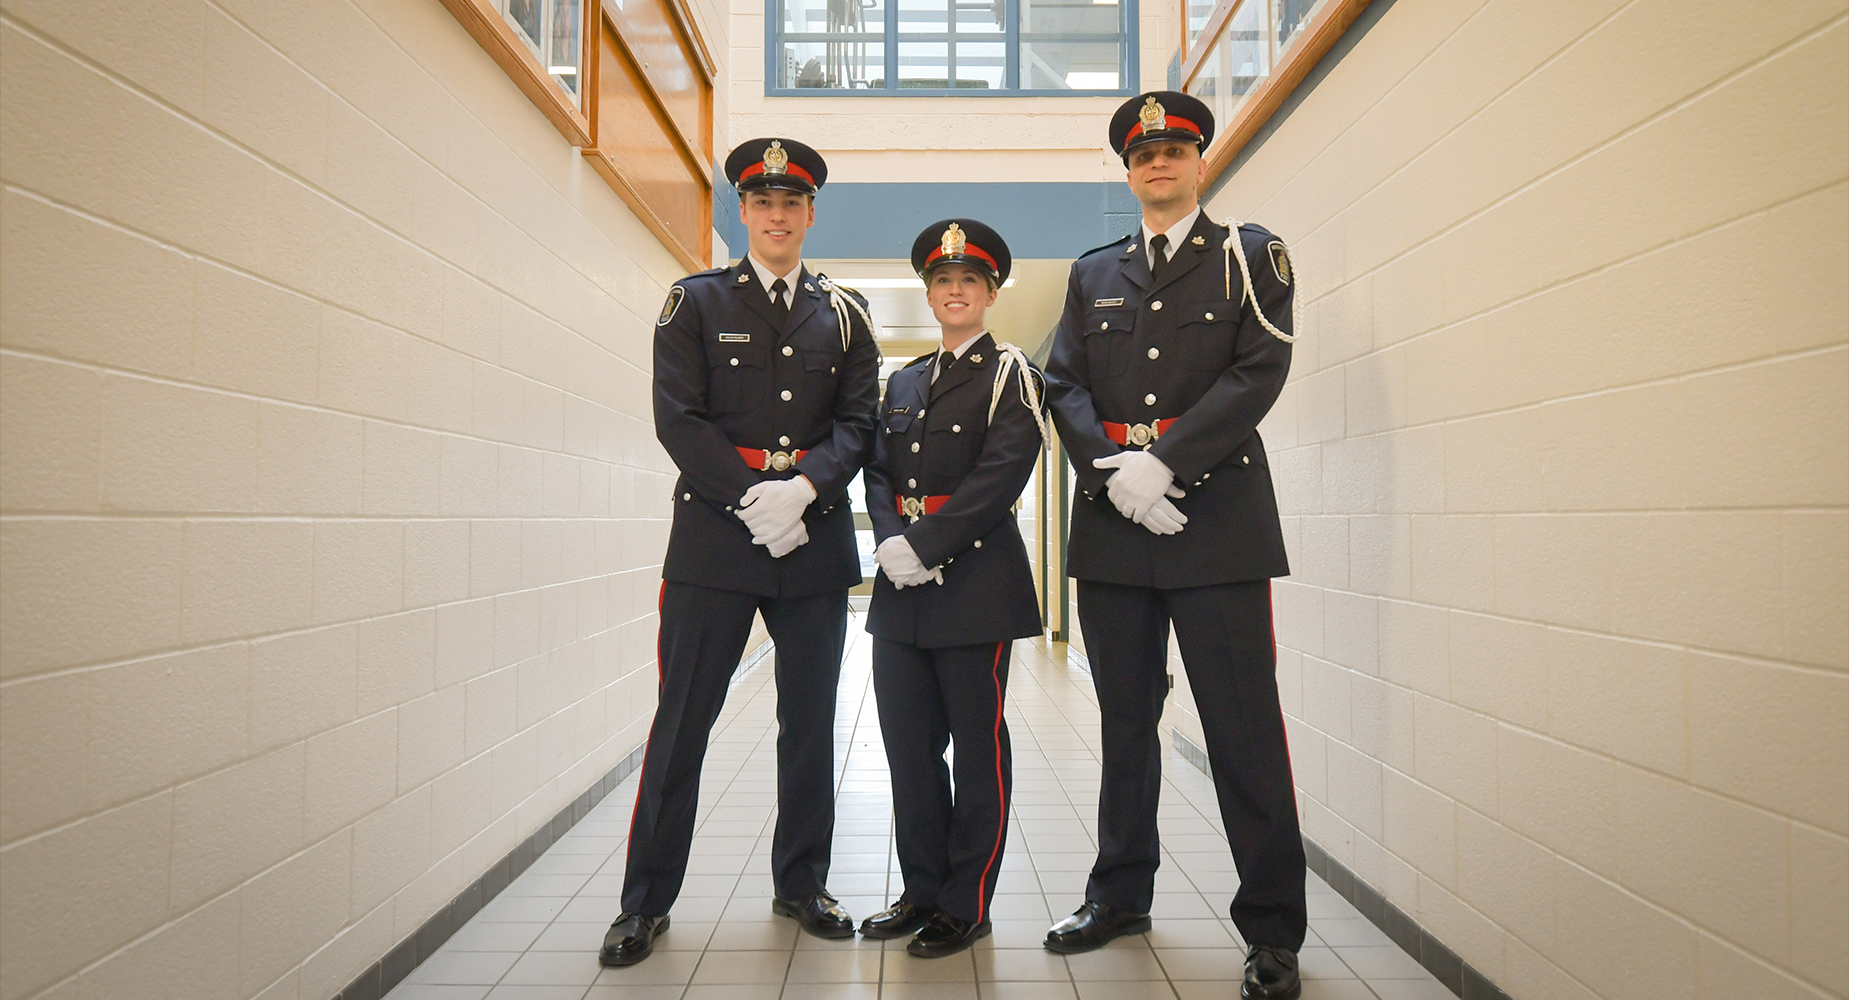 Three new police officers in dress uniform